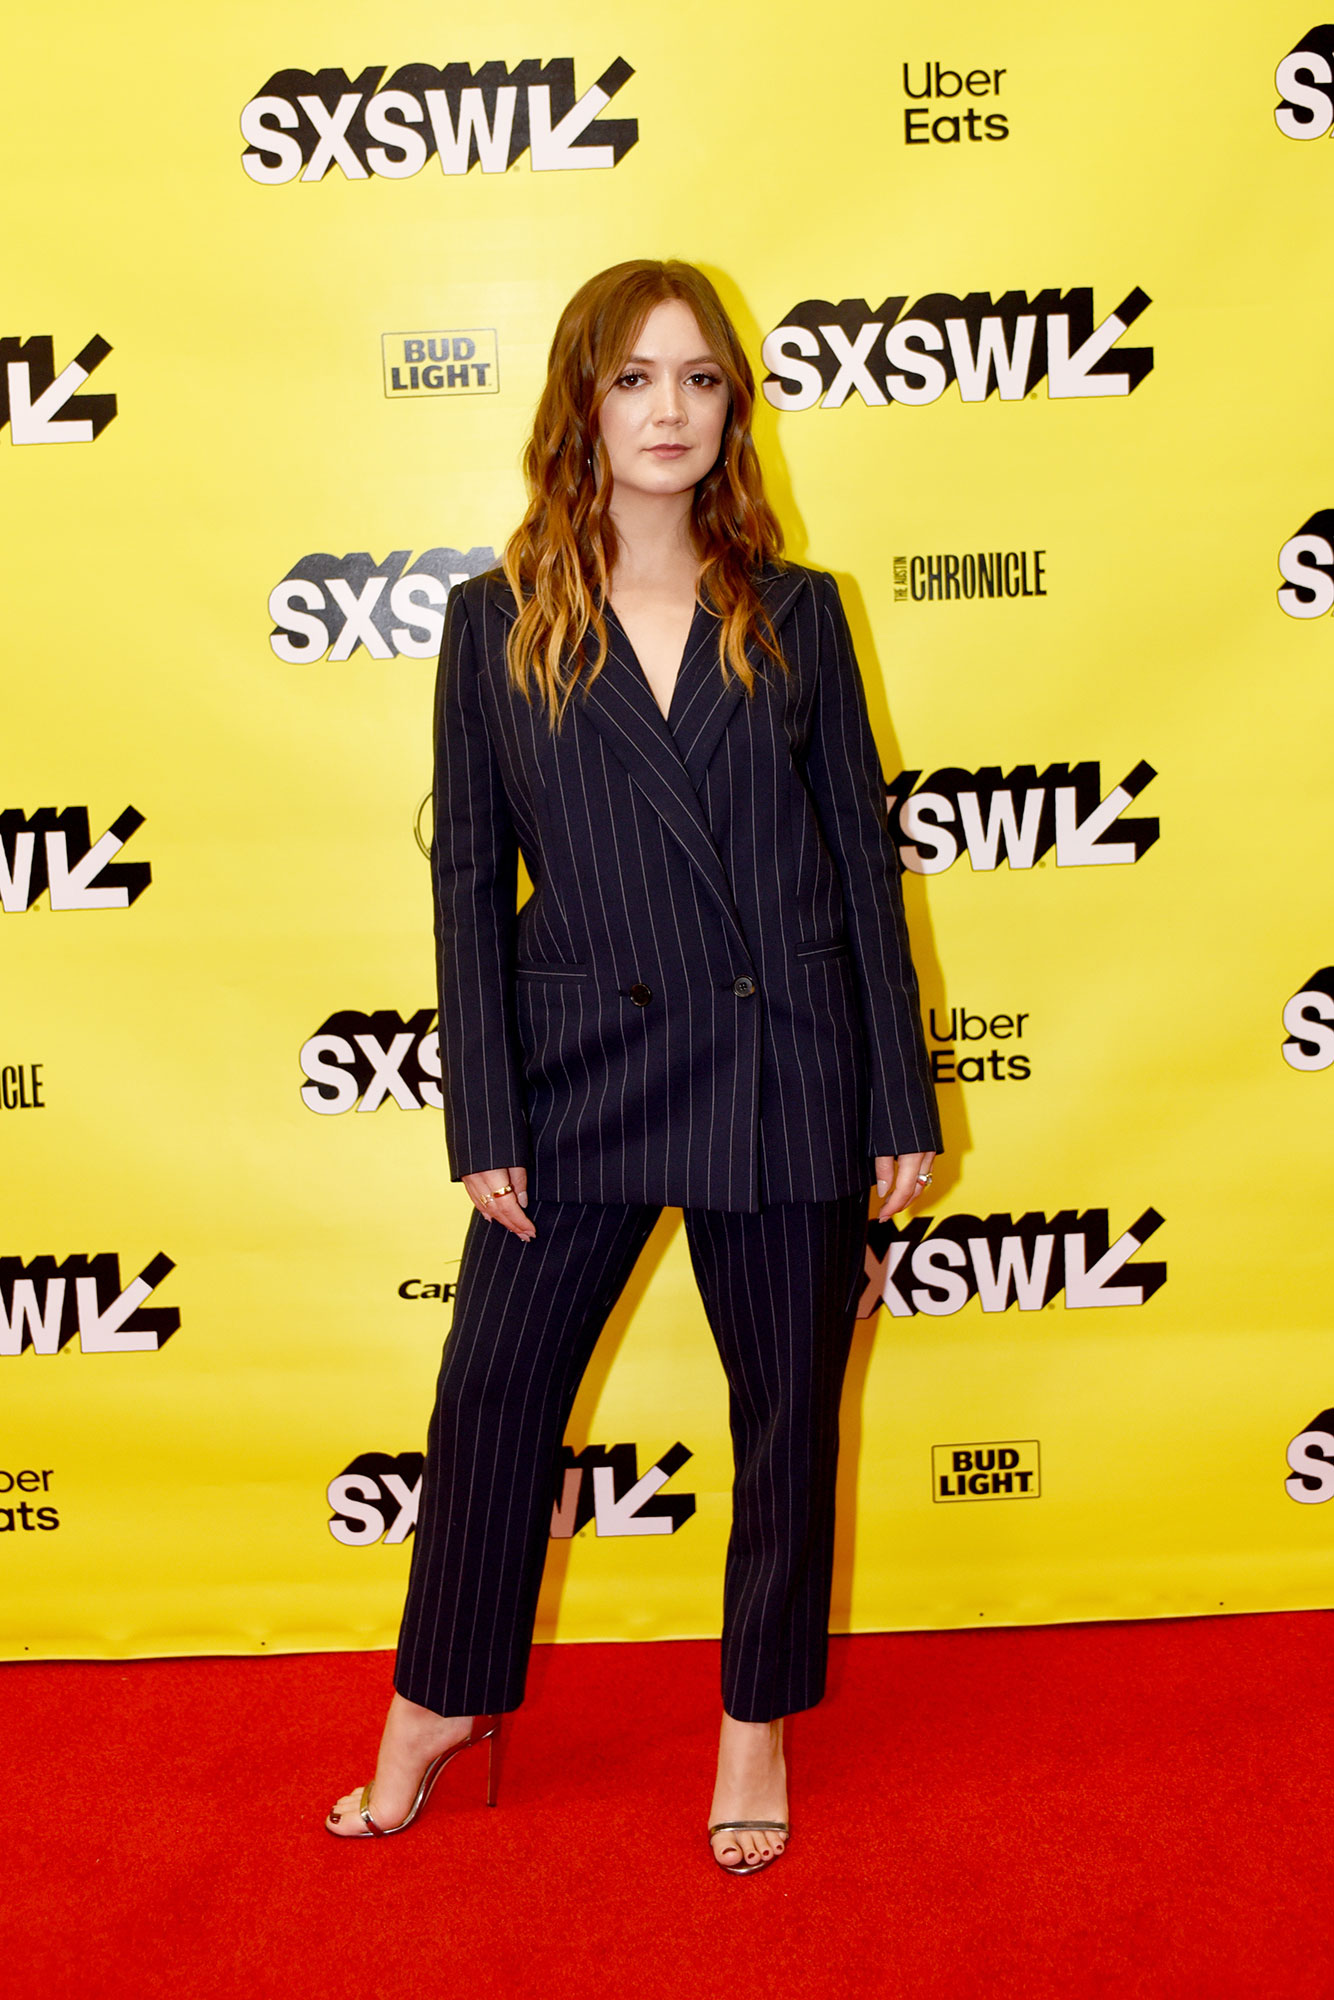 Billie Lourd SXSW Is Giving Us Chic Outfit Inspo for Spring - We love the boss-lady vibes of the Booksmart actress' slouchy pinstripe suit on Monday, March 11.